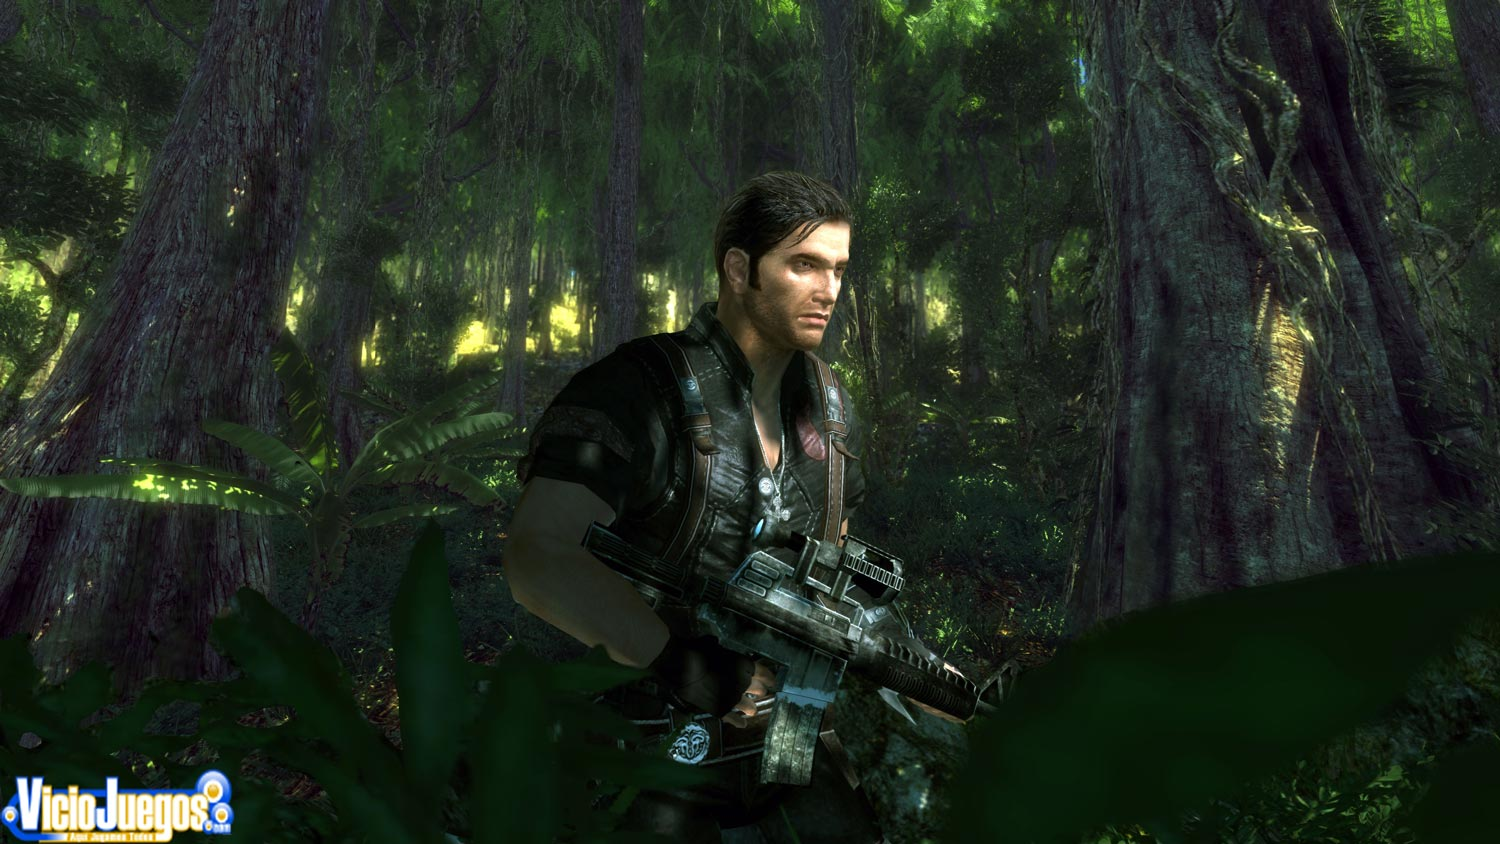 Primer Vistazo: Just Cause 2